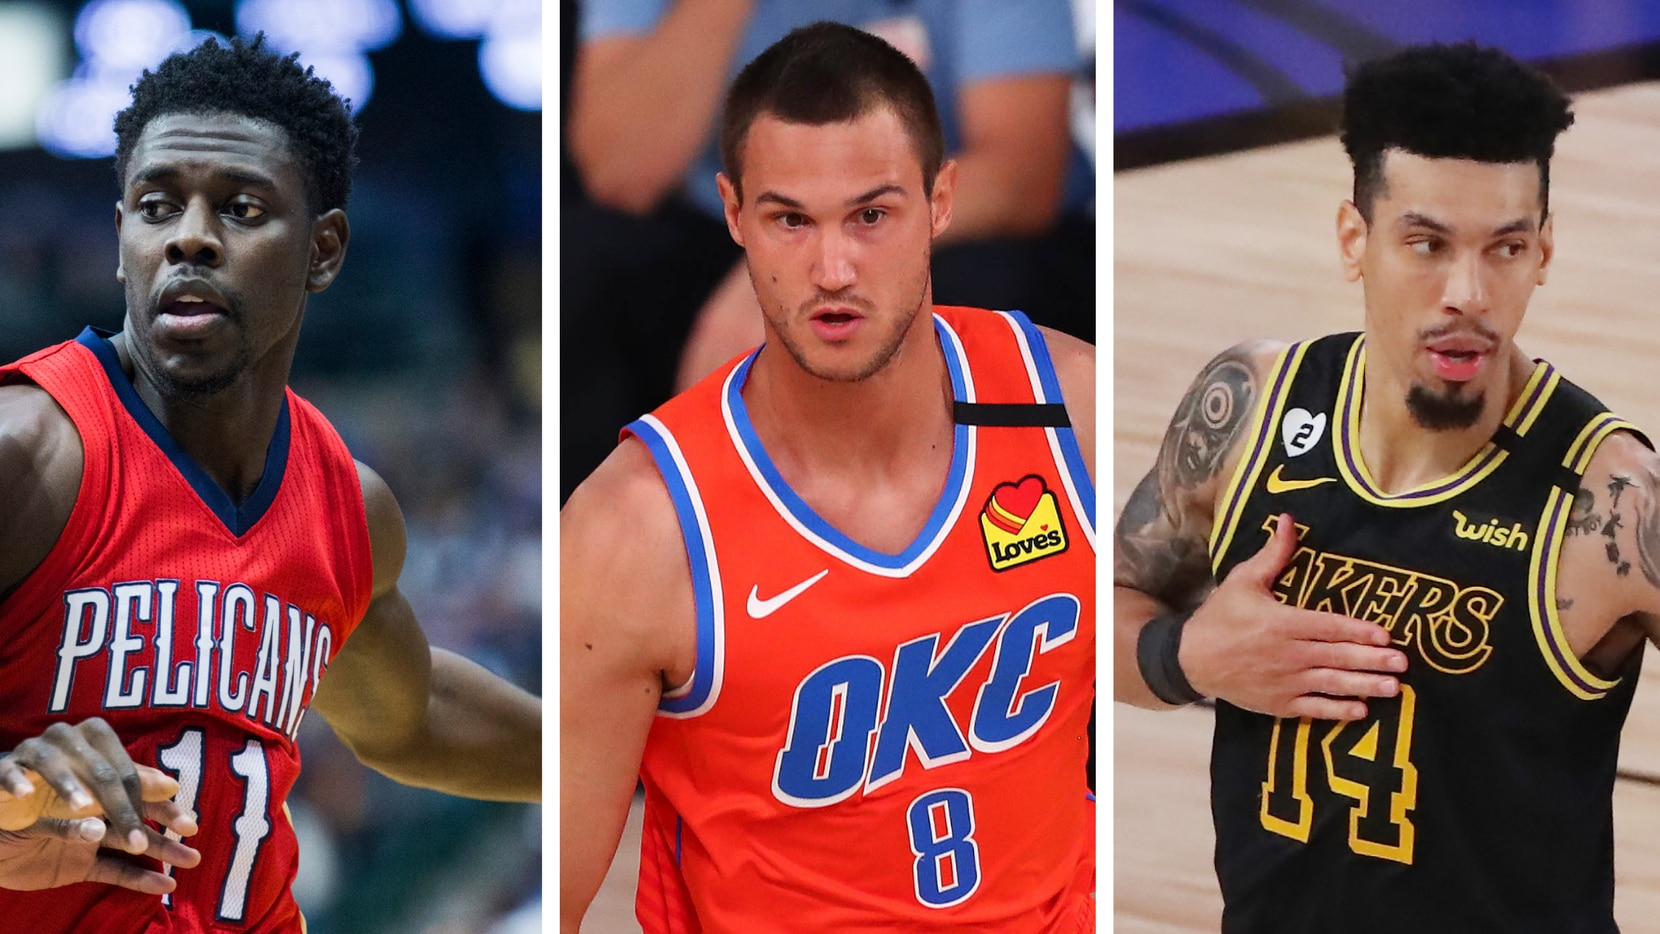 Monday the Mavs dove into a week of potential trades, Wednesday night's draft and Friday's start of free agency that will greatly shape the fast-approaching NBA season. (Photo credit: The Dallas Morning News/Ashley Landis, left; Getty Images/Kim Klement, middle; Getty Images/Sam Greenwood, right)